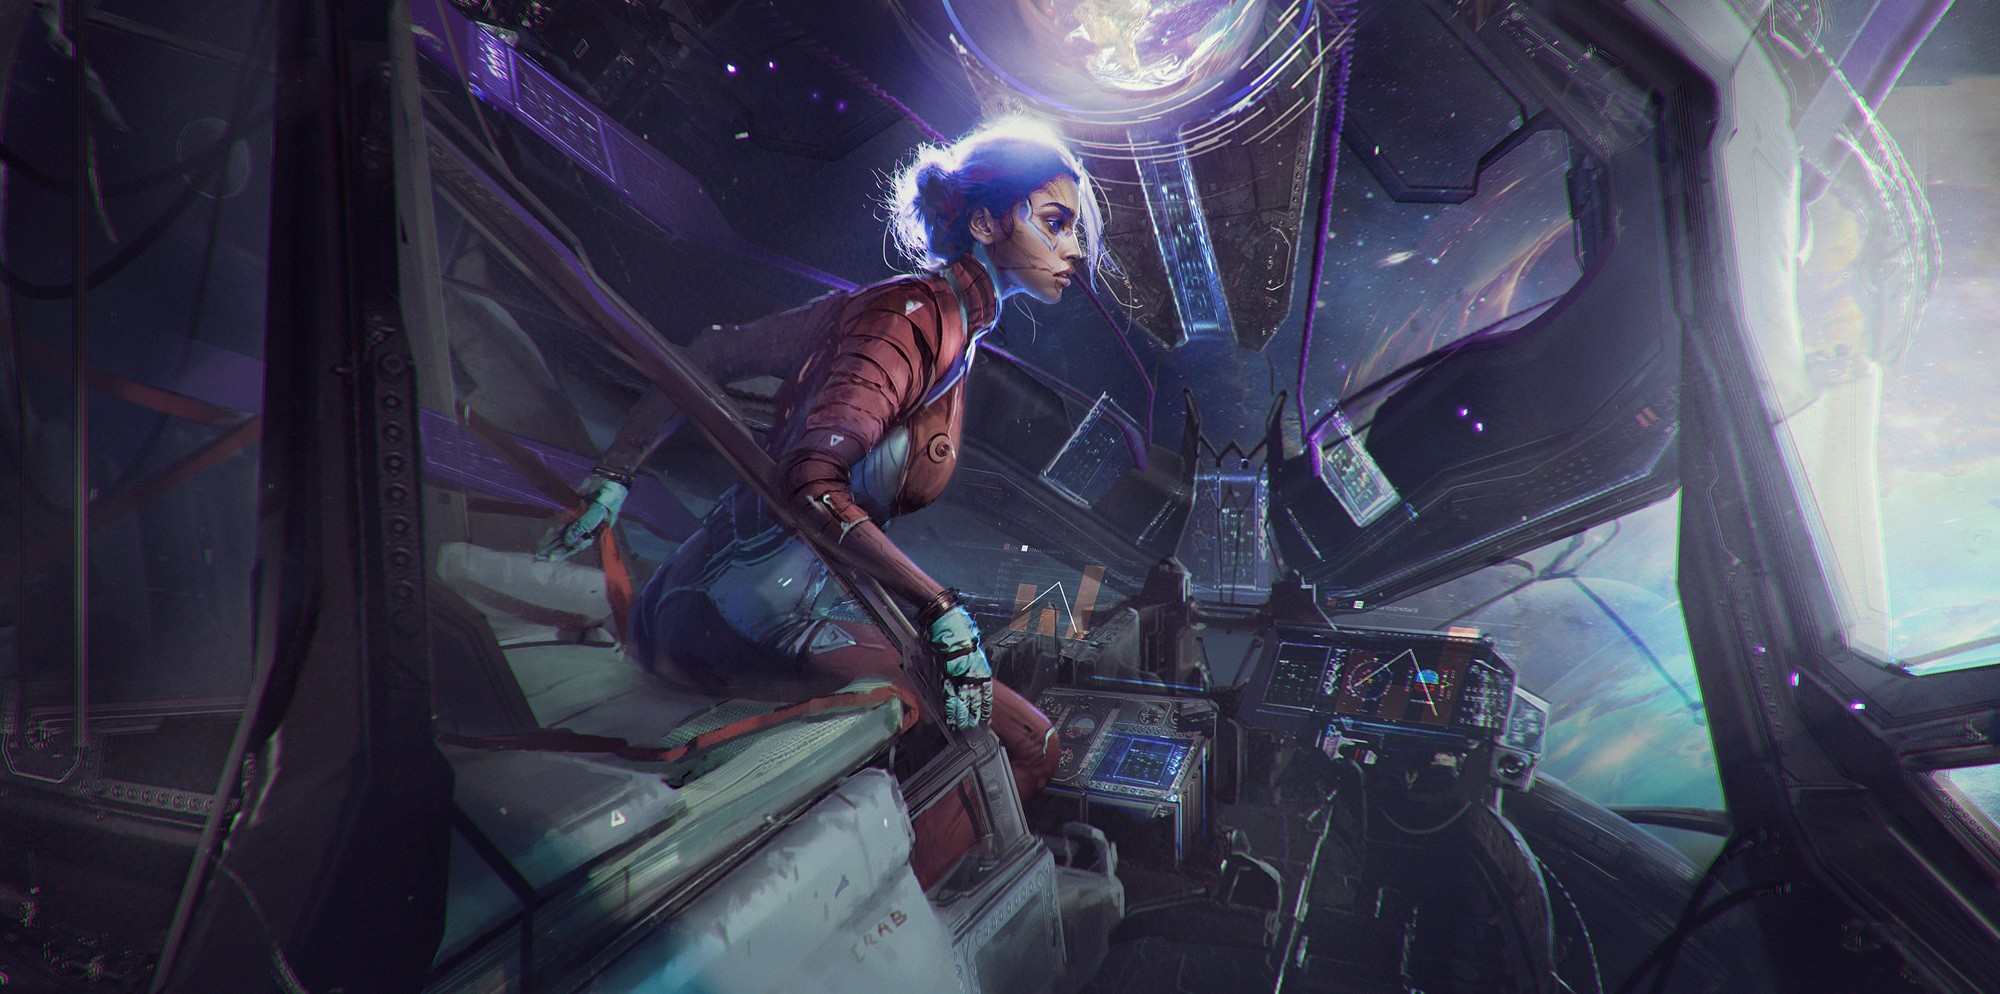 General 2000x994 Magdalena Radziej digital art science fiction spaceship cockpit profile space suit women sitting pilot space gloves tattoo alone